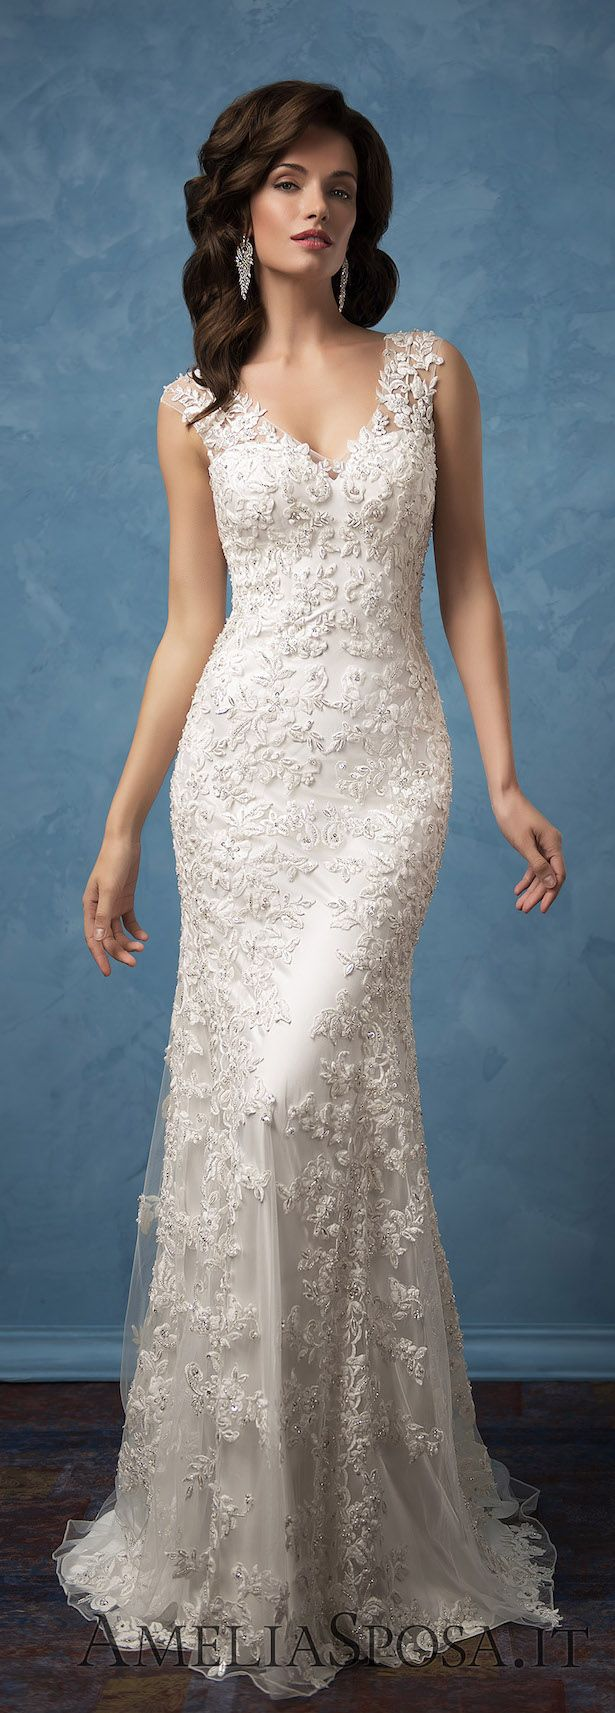 best wedding gowns images on pinterest marriage brides and